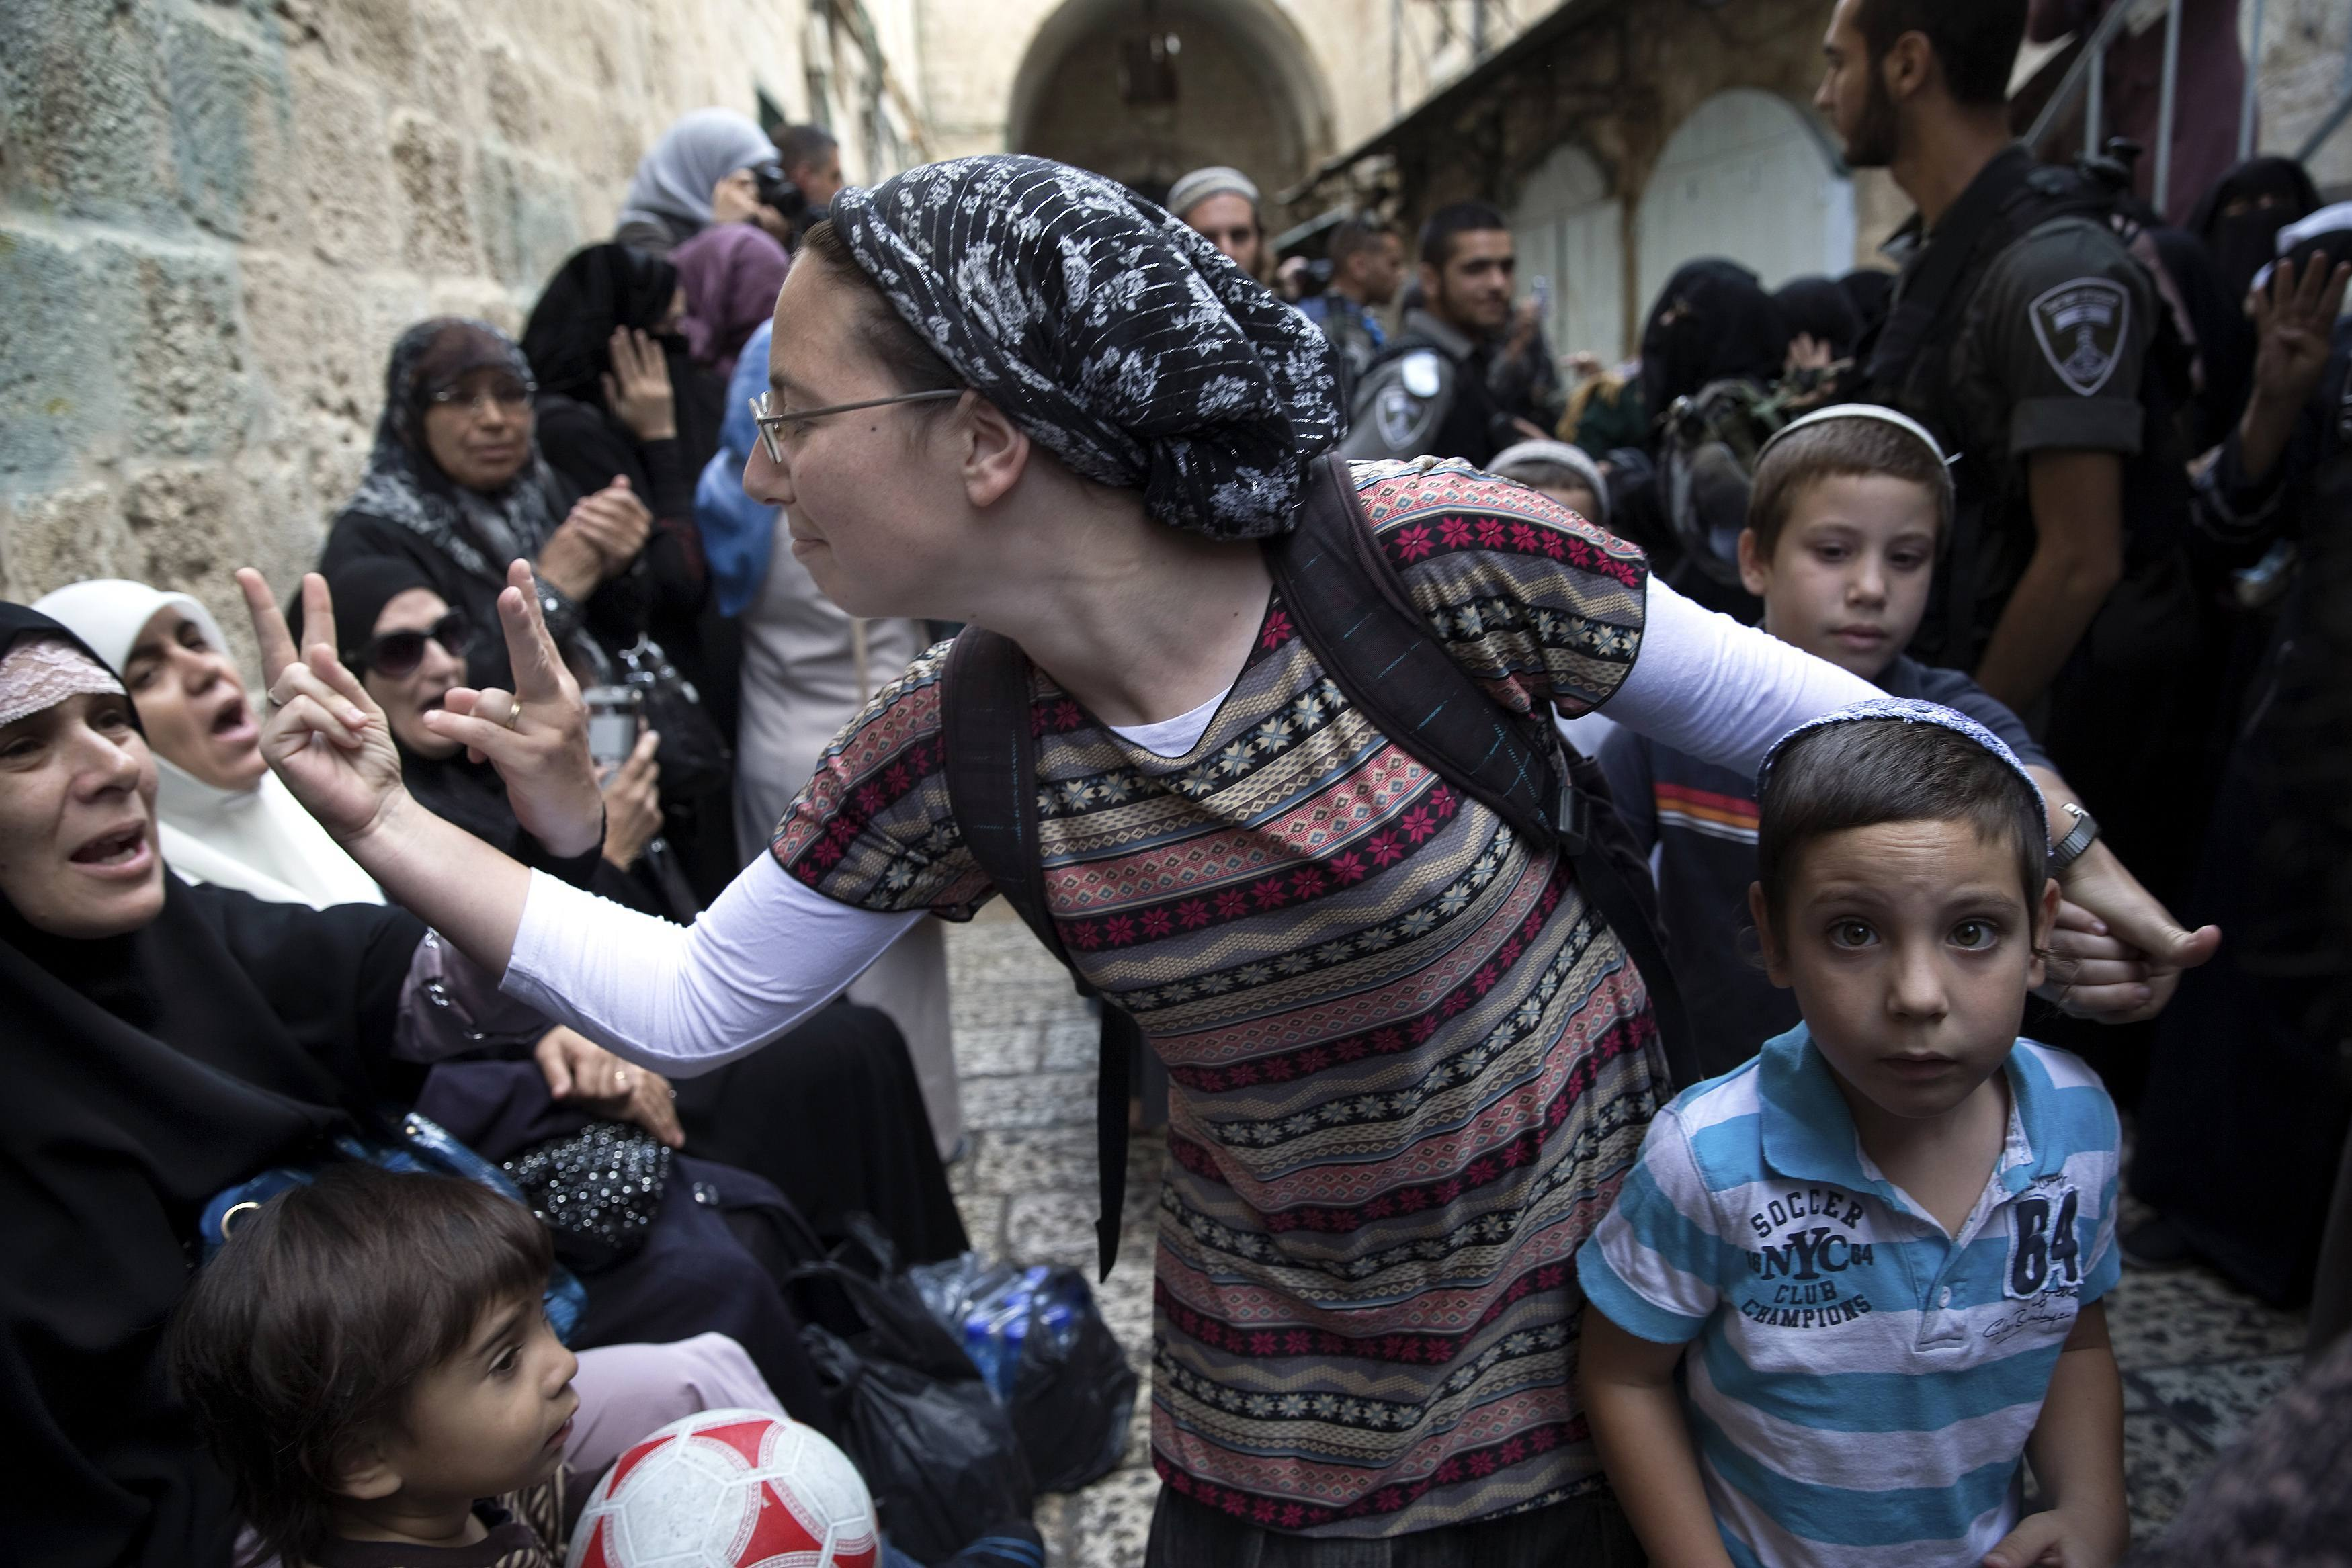 Is Forgiveness A Facile Solution To The Israeli-Palestinian Conflict?